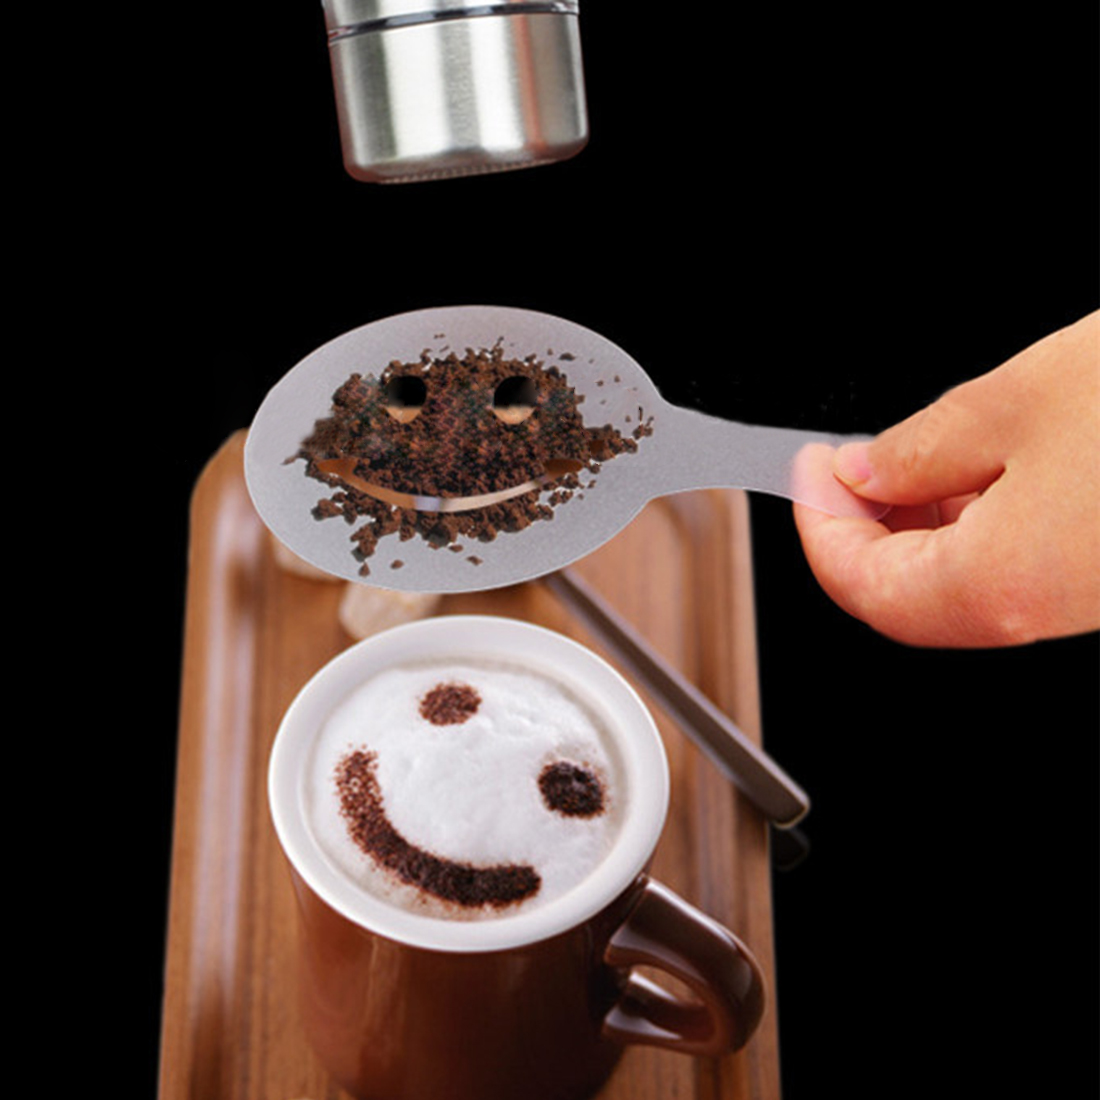 16 Pcs Cappuccino Coffee  Stencils Mike Tea  Art Drawing Foam Spray Stencils Cake Duster Templates Coffee Printing Mold